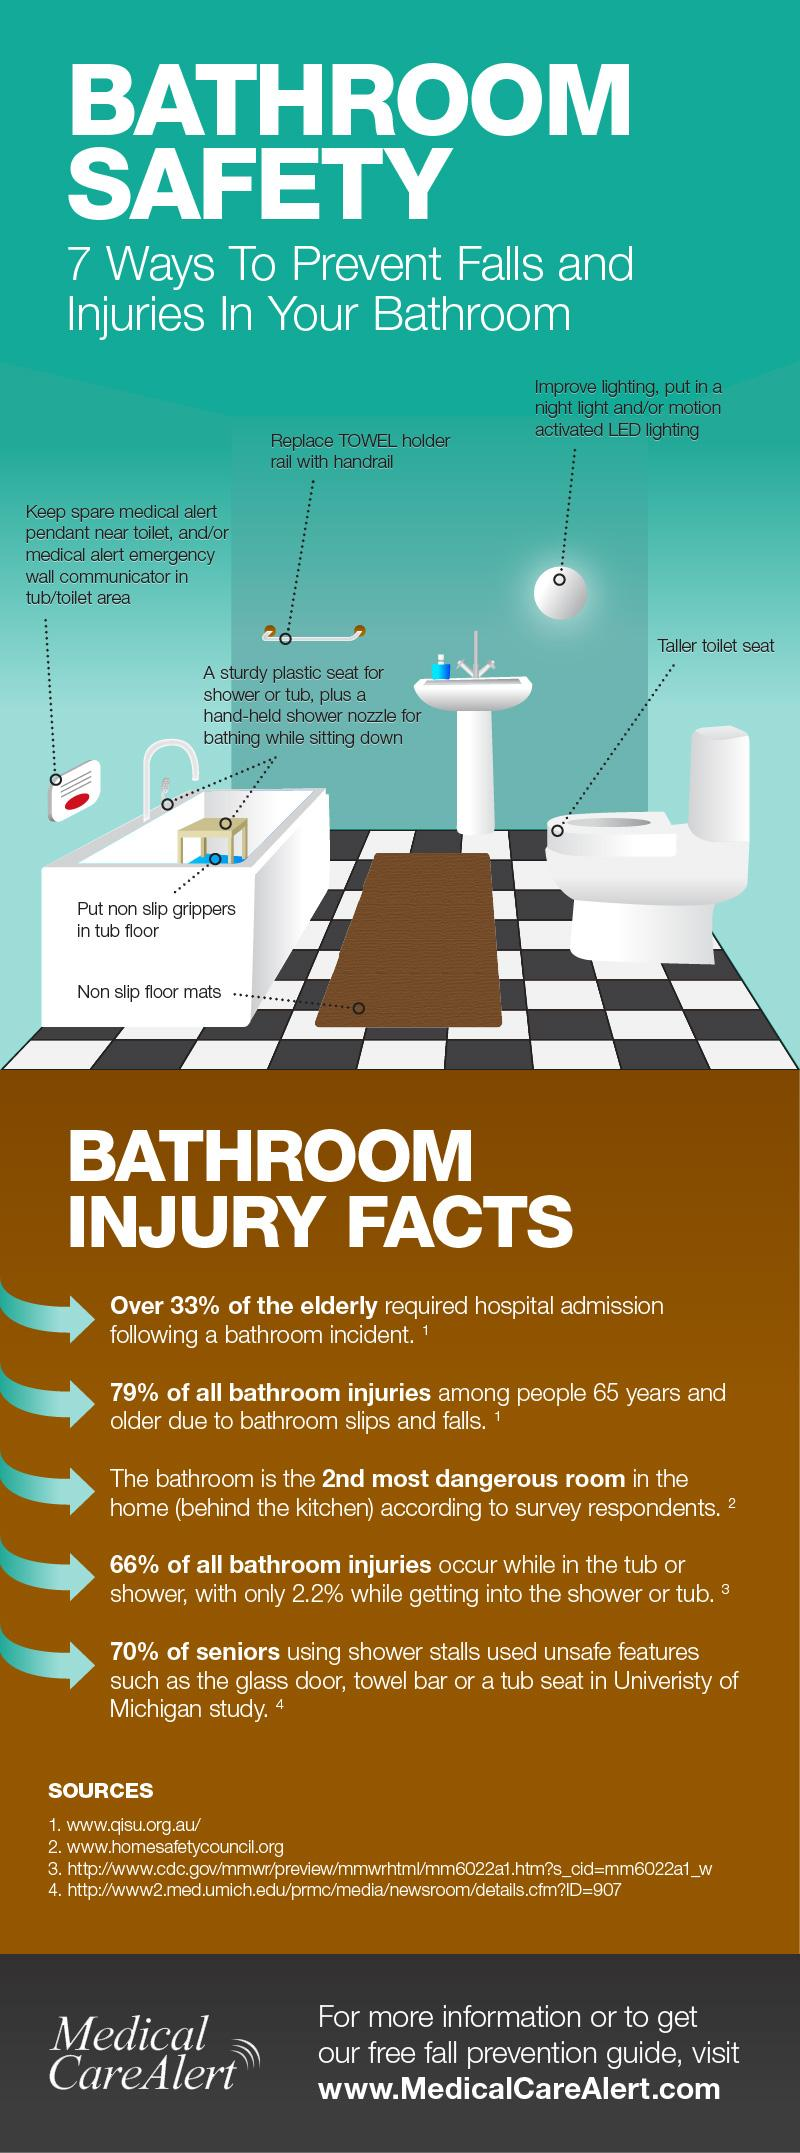 bathroom-safety-infographic